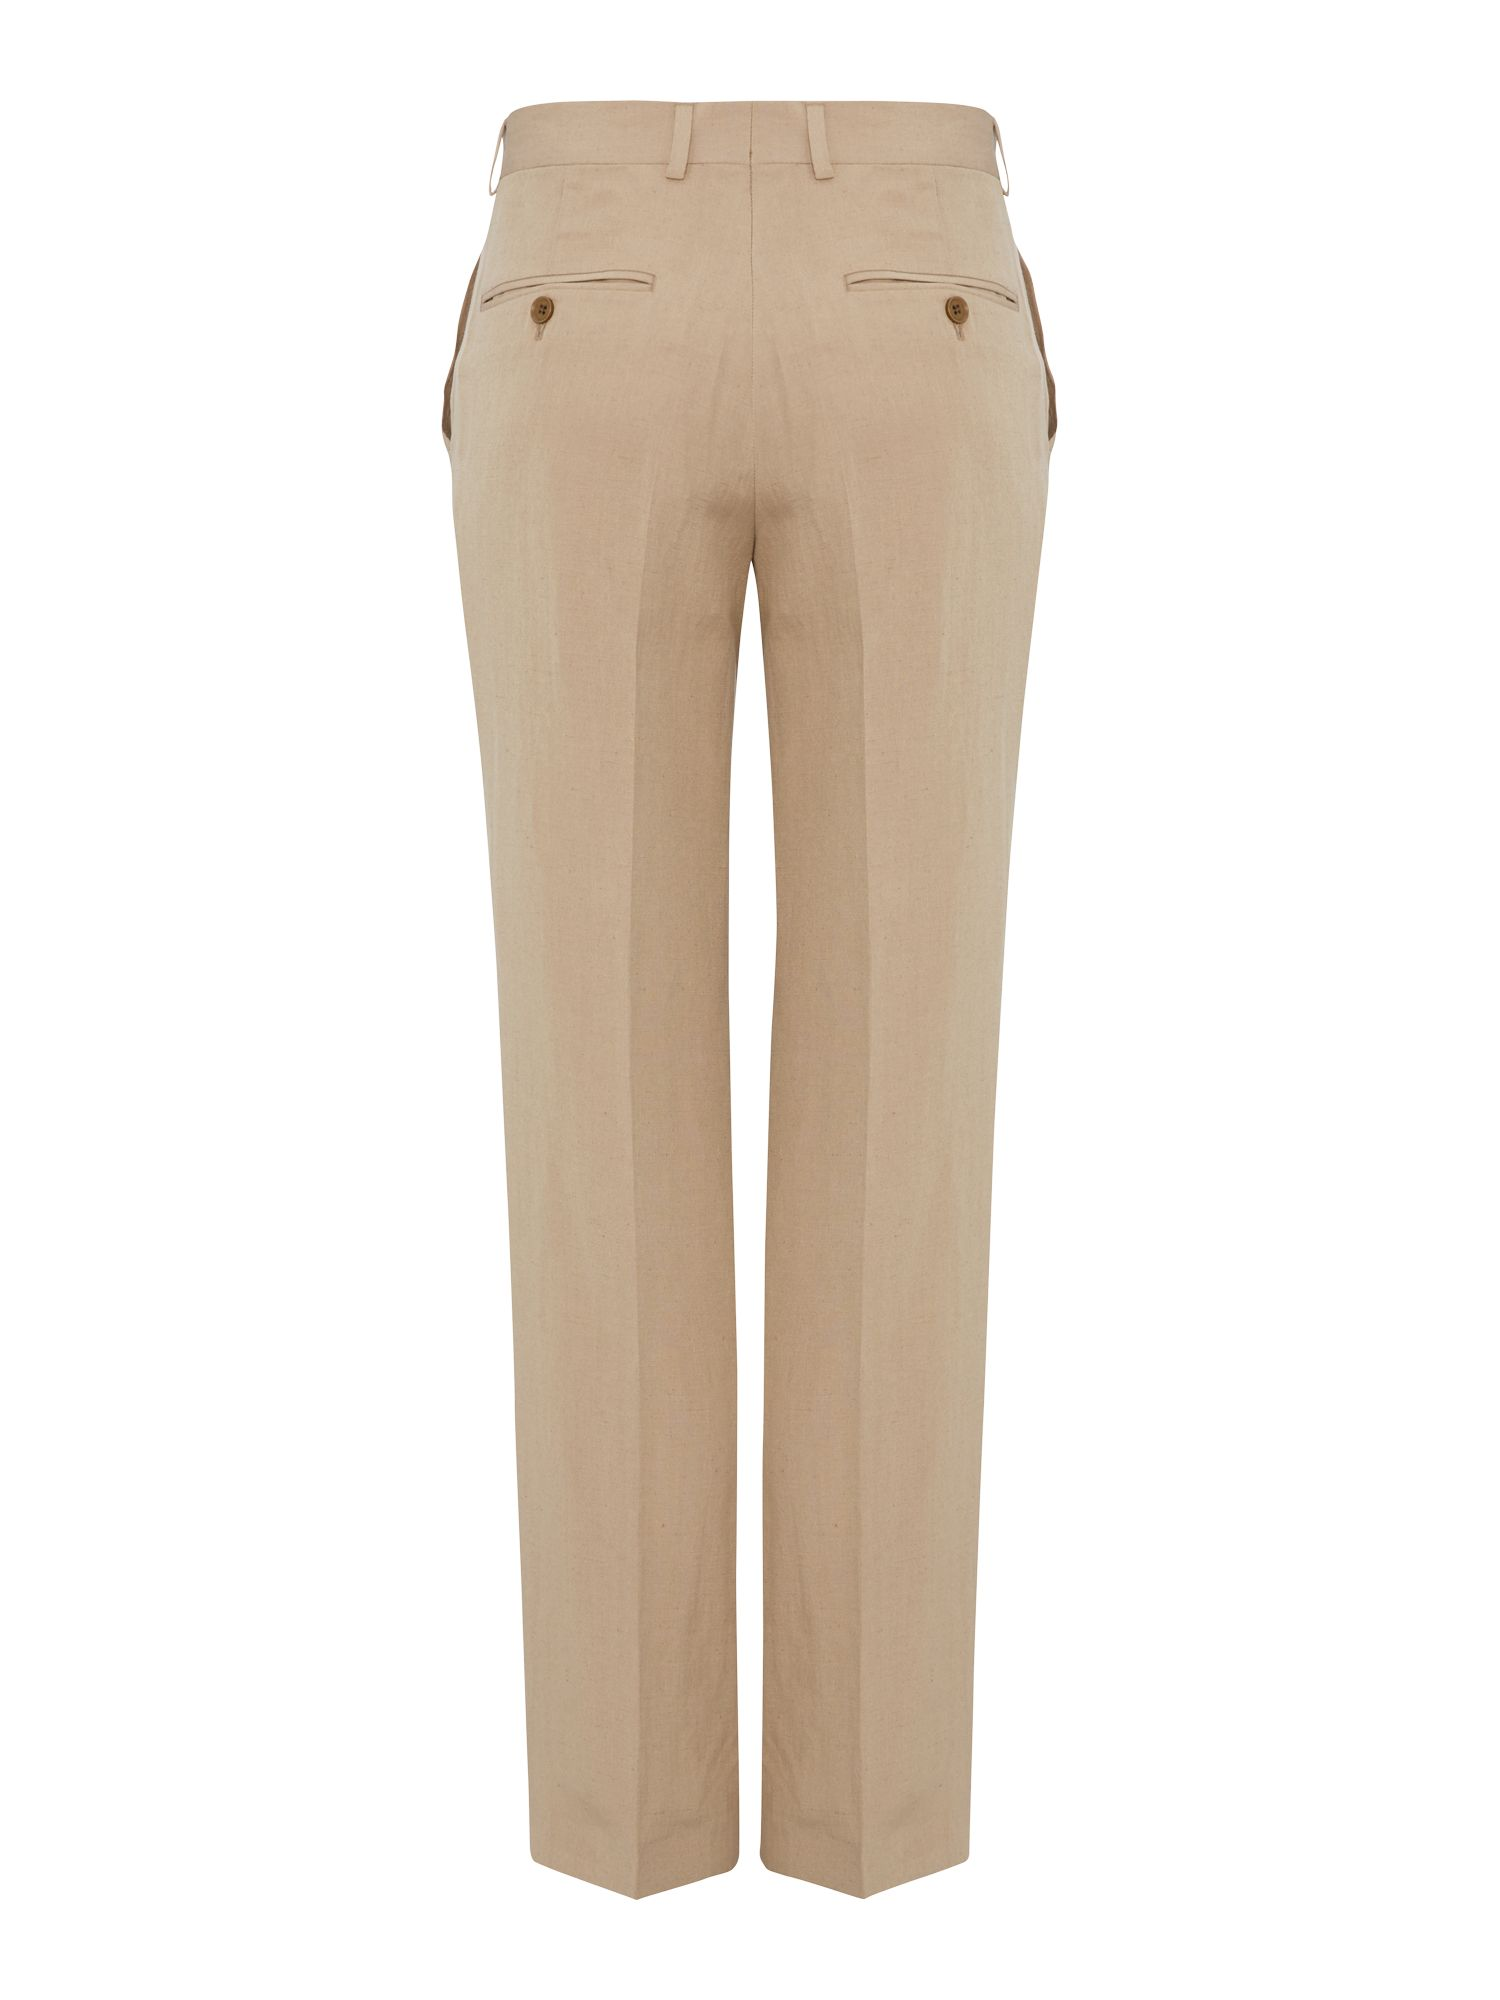 Silk linen formal tailored trouser